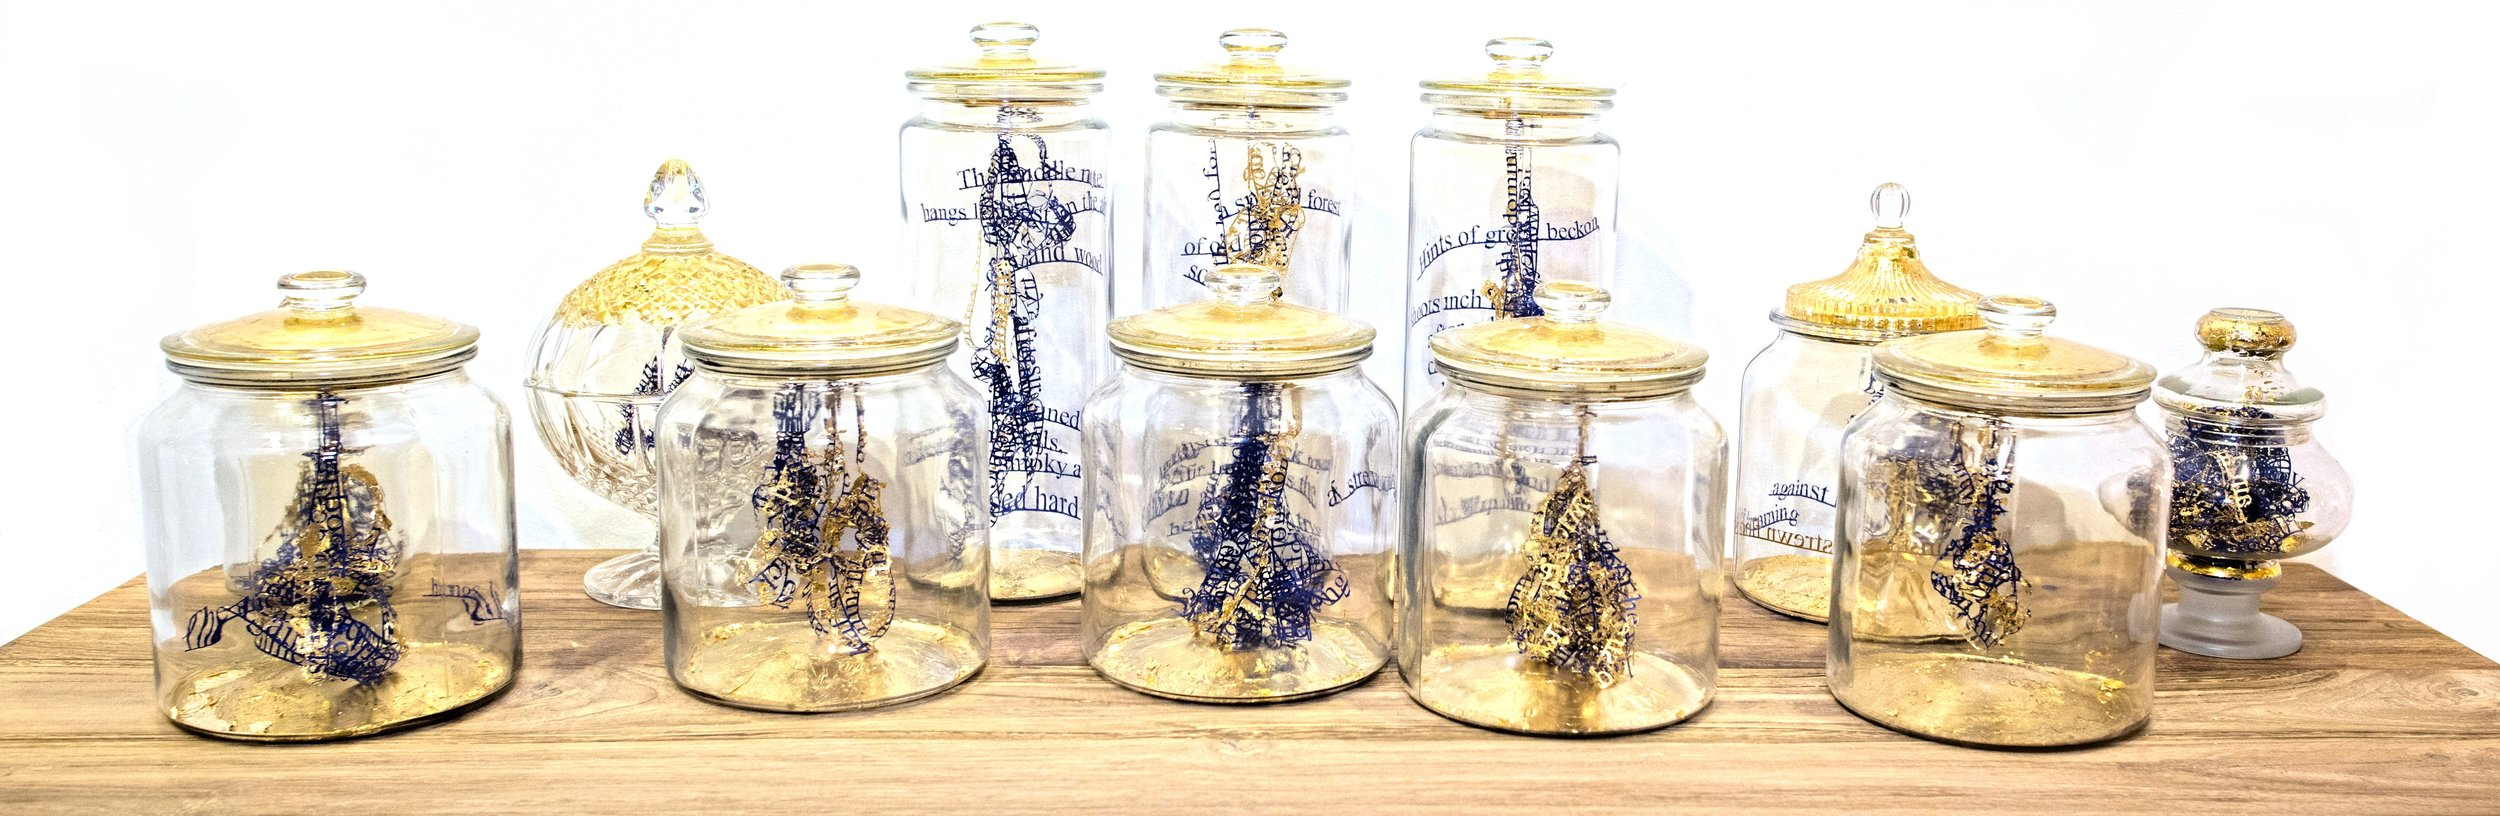 Twelve glass jars sit atop a wooden display piece, all capped with the familiar gold embellishment that seems to be a recurring artwork visual in the exhibition. As you move closer to this wooden table display, you catch a faint but lasting whiff of earthy scents, or Oudh – a delicate fragrance familiar to Kampong Glam.